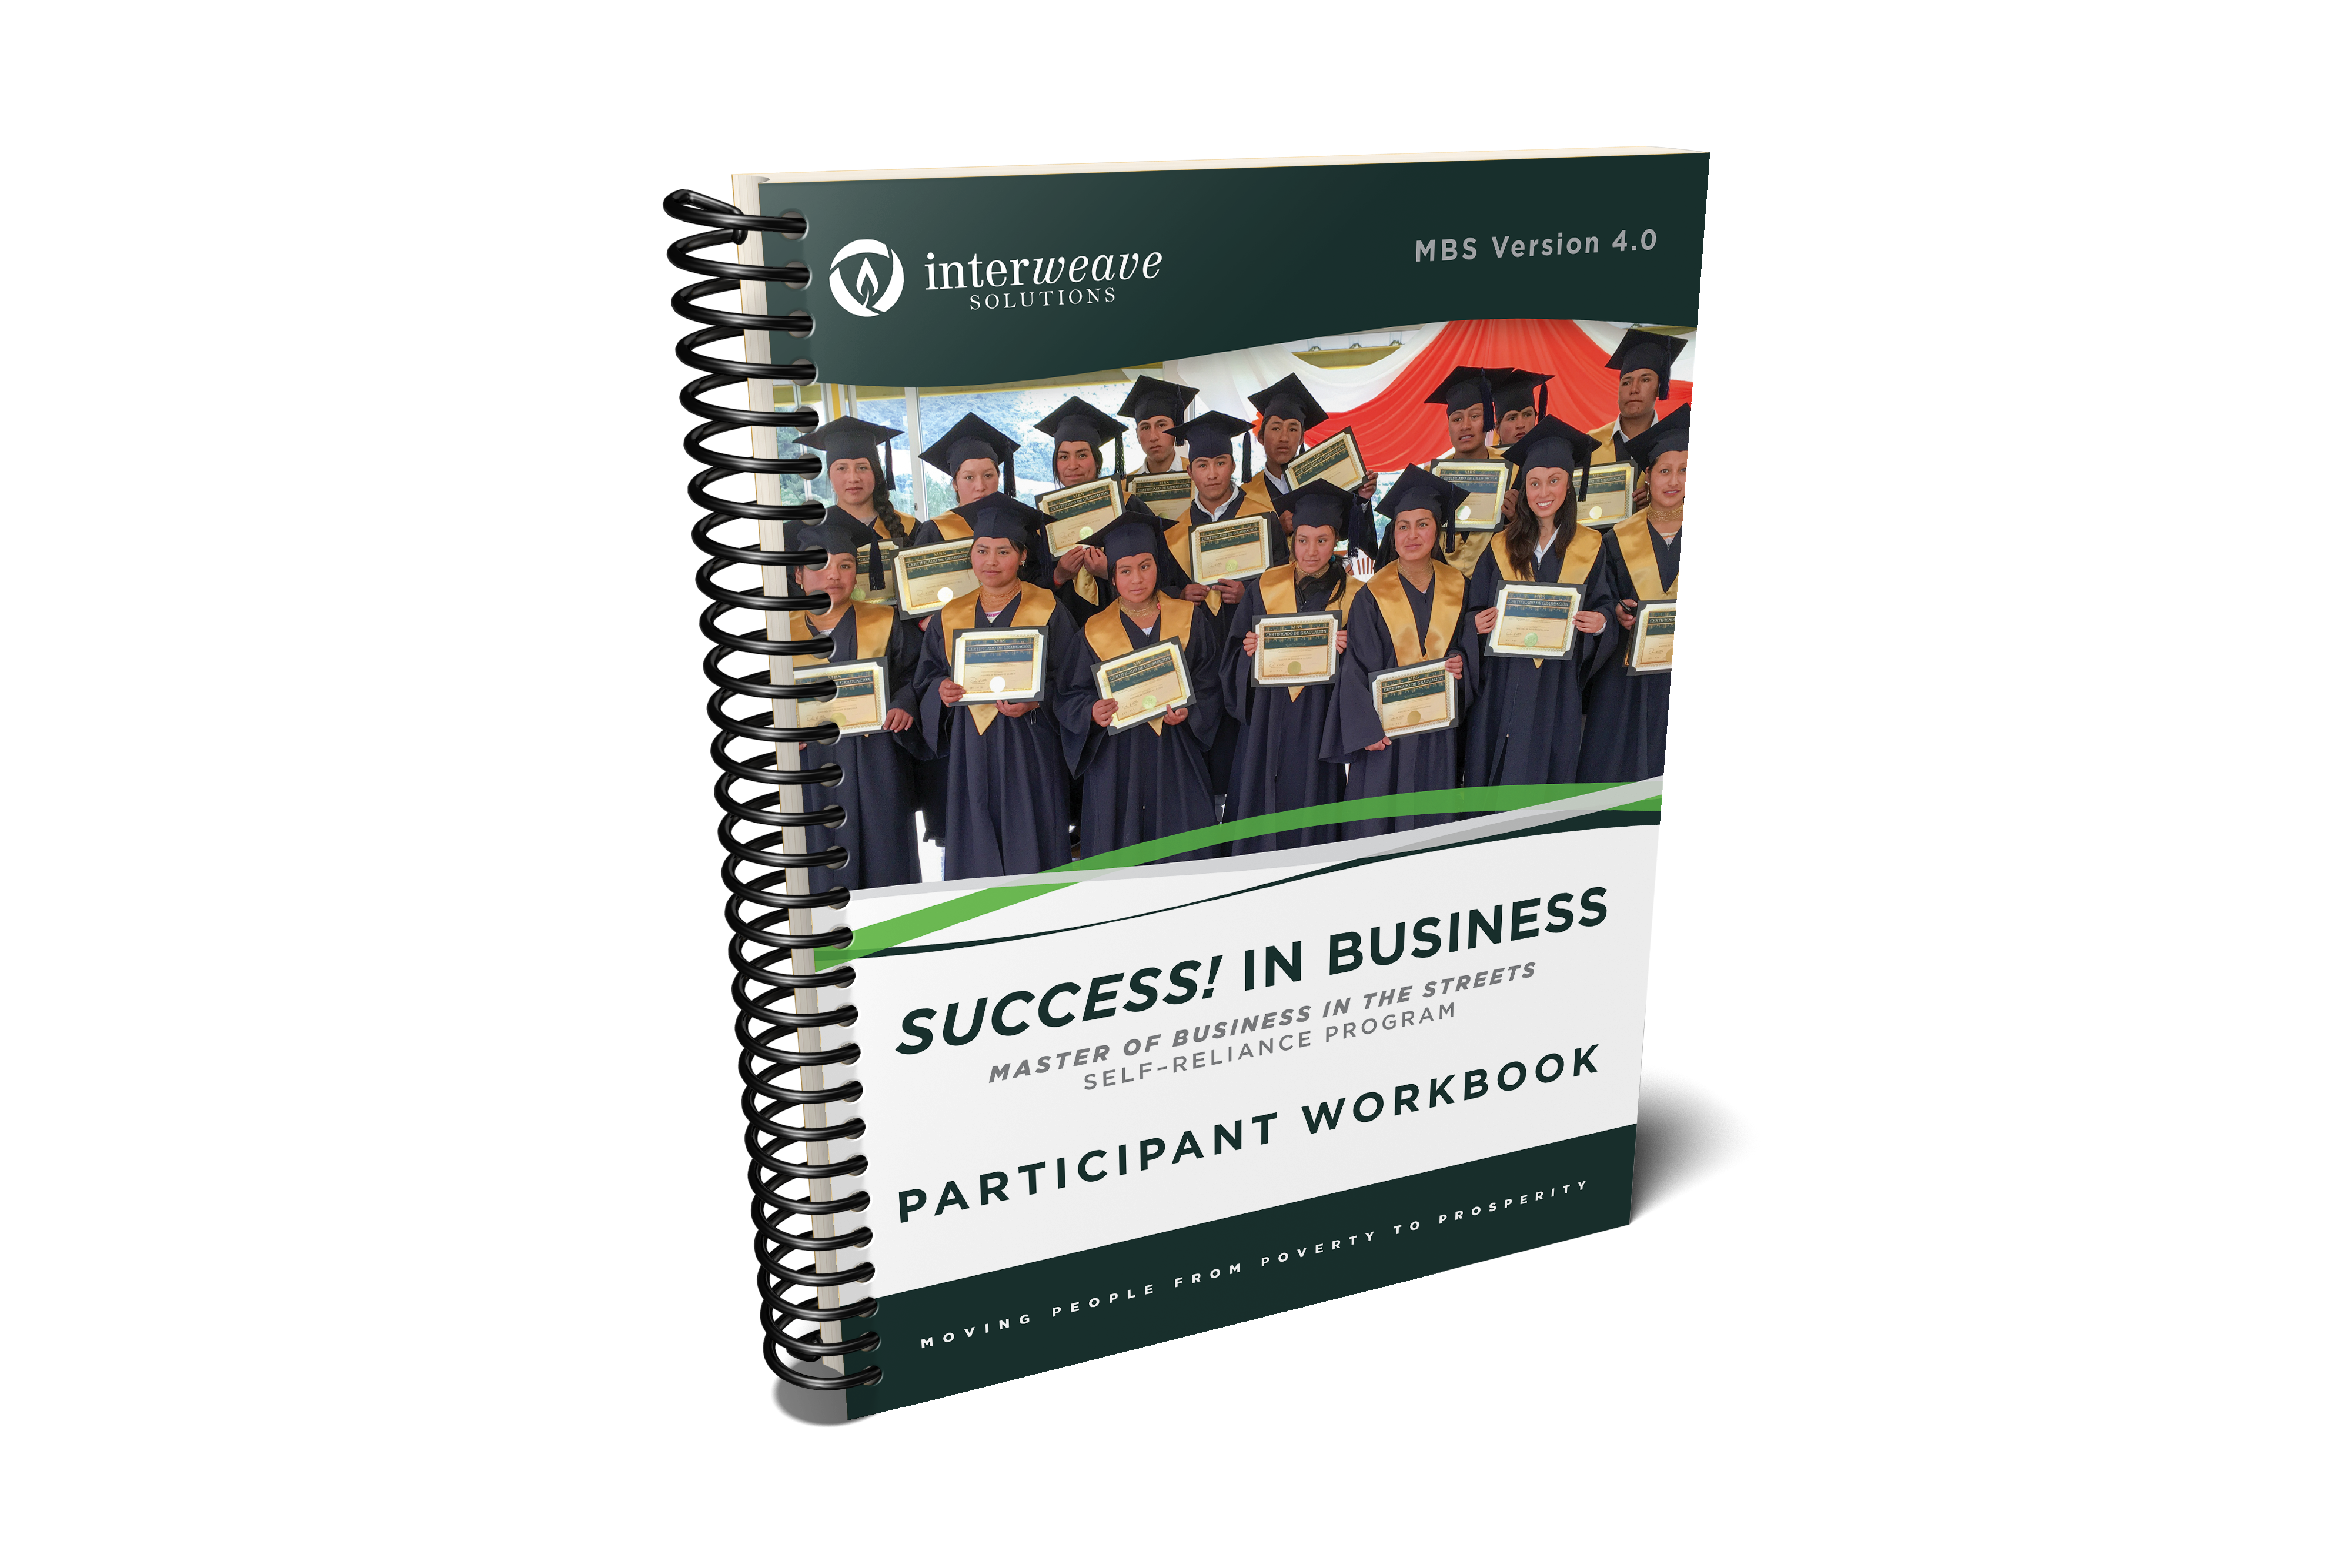 Master of Business in the Streets Course